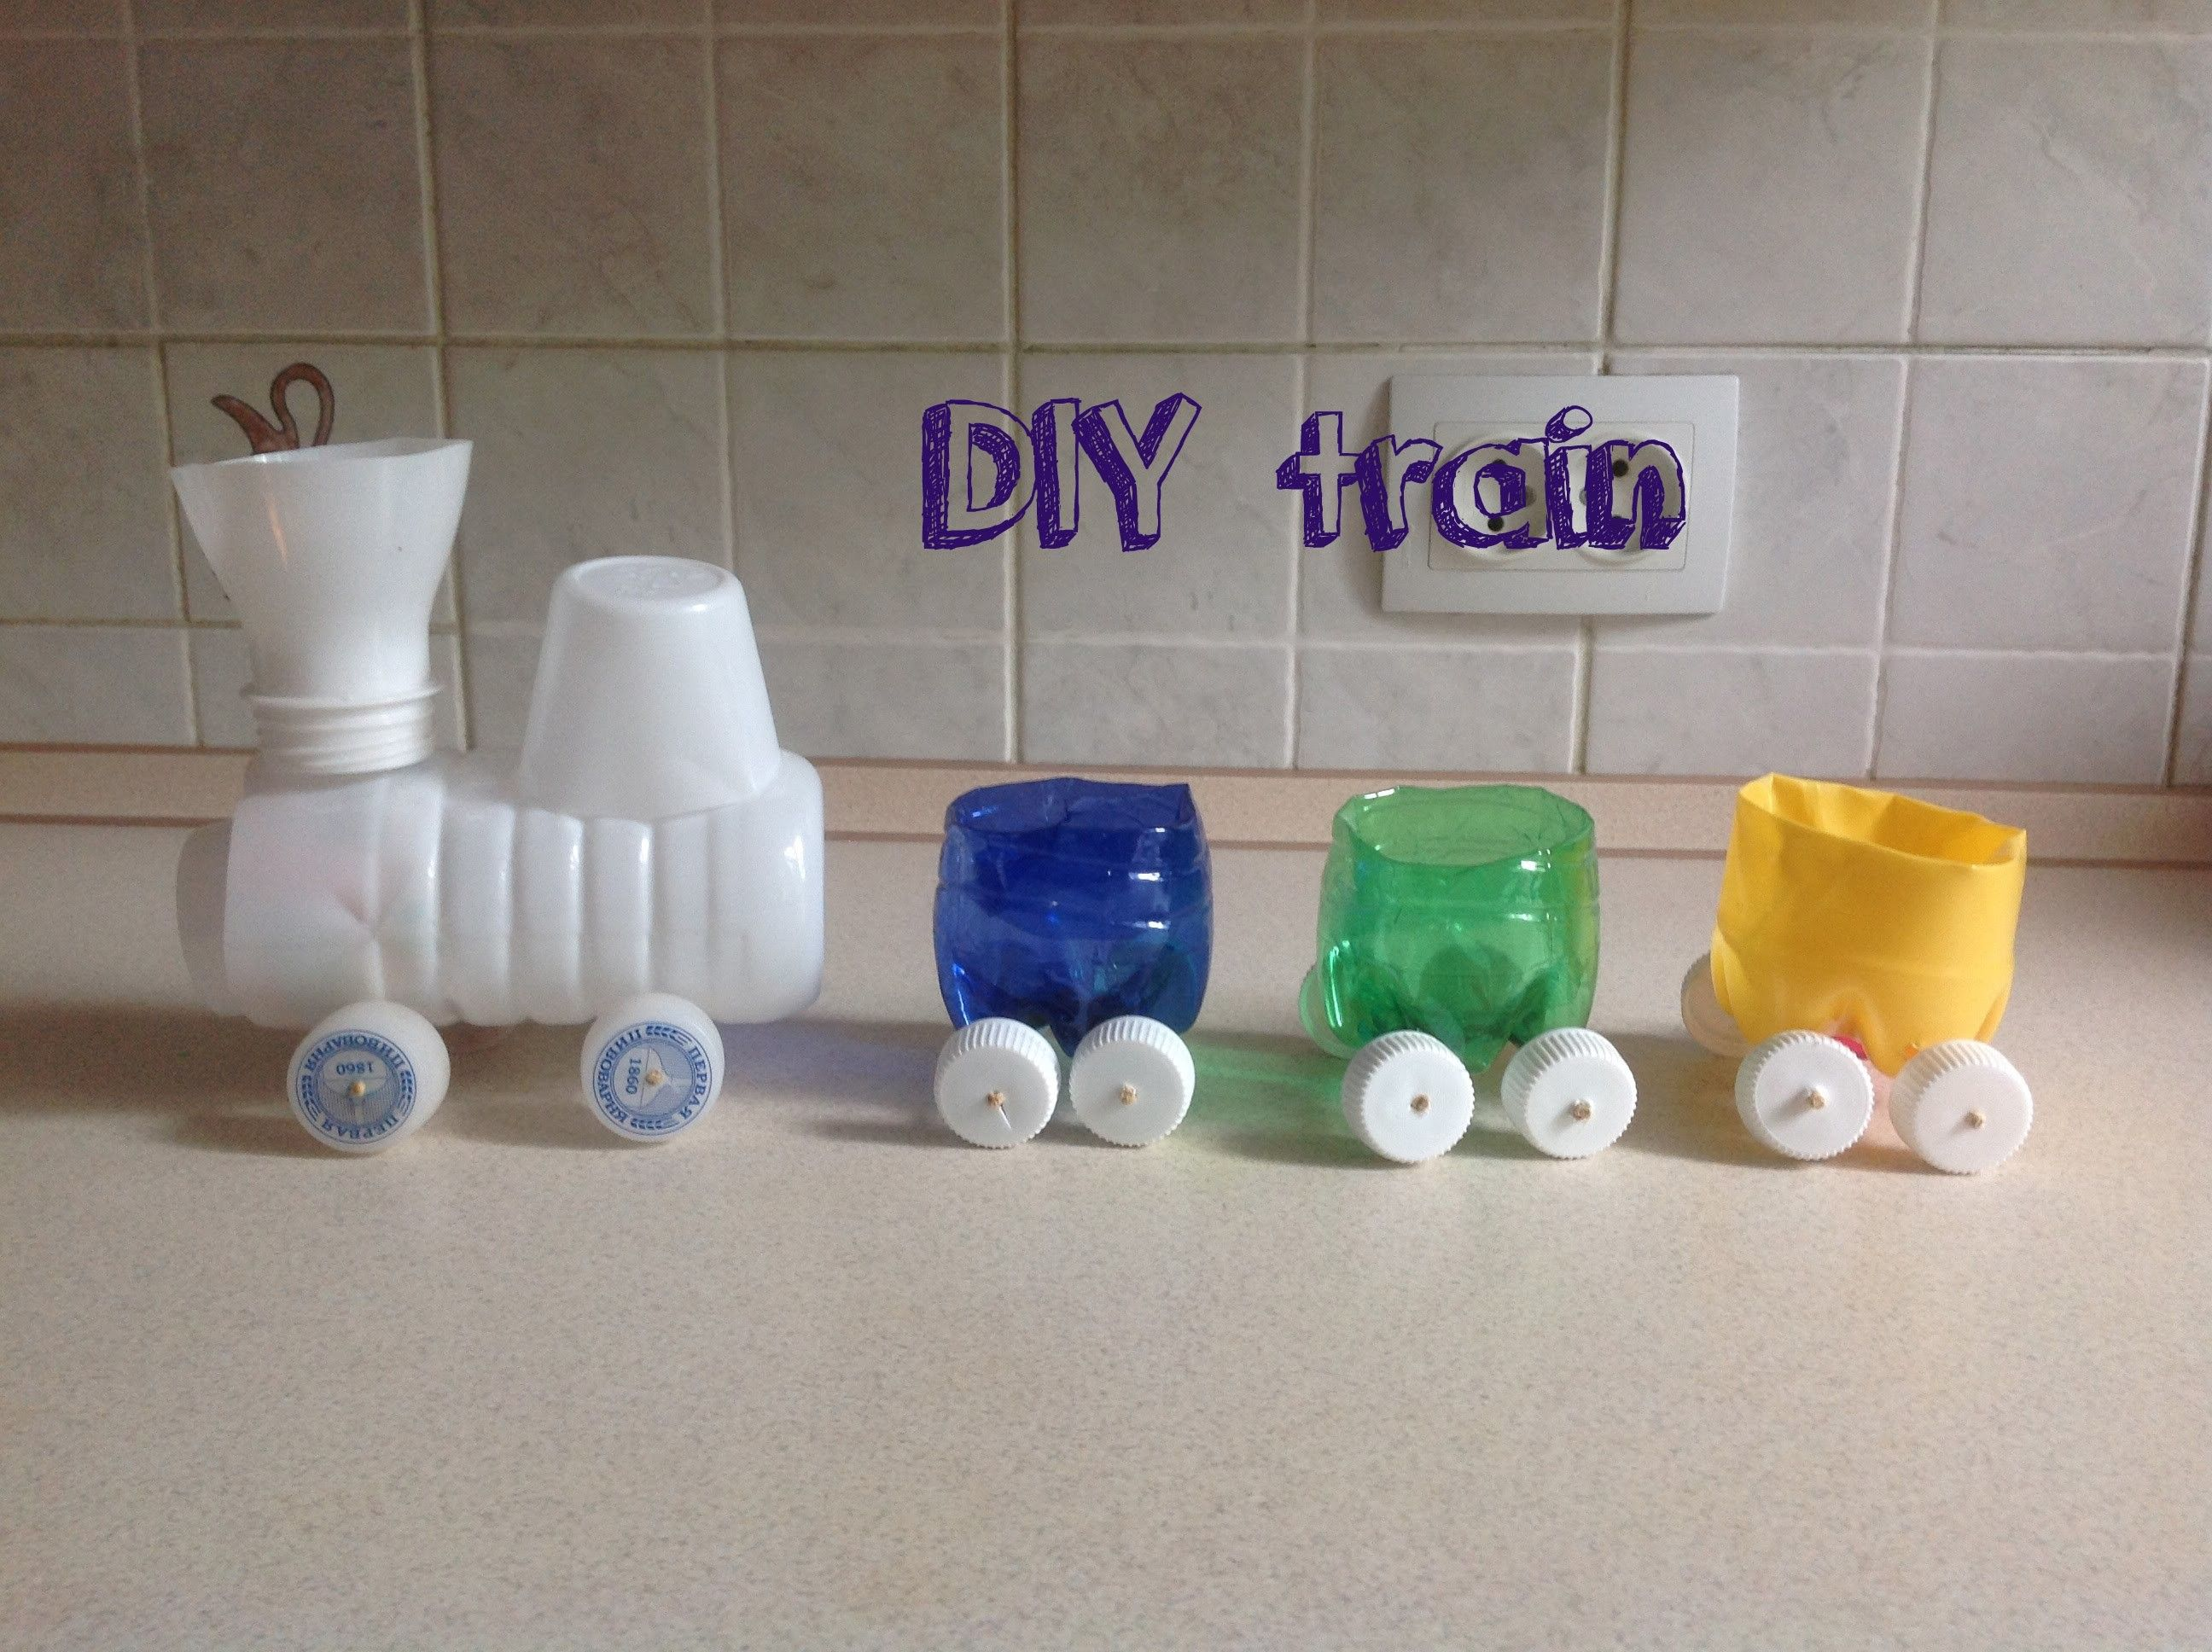 Train diy plastic bottles crafts for kids plastic for Diy recycled plastic bottles